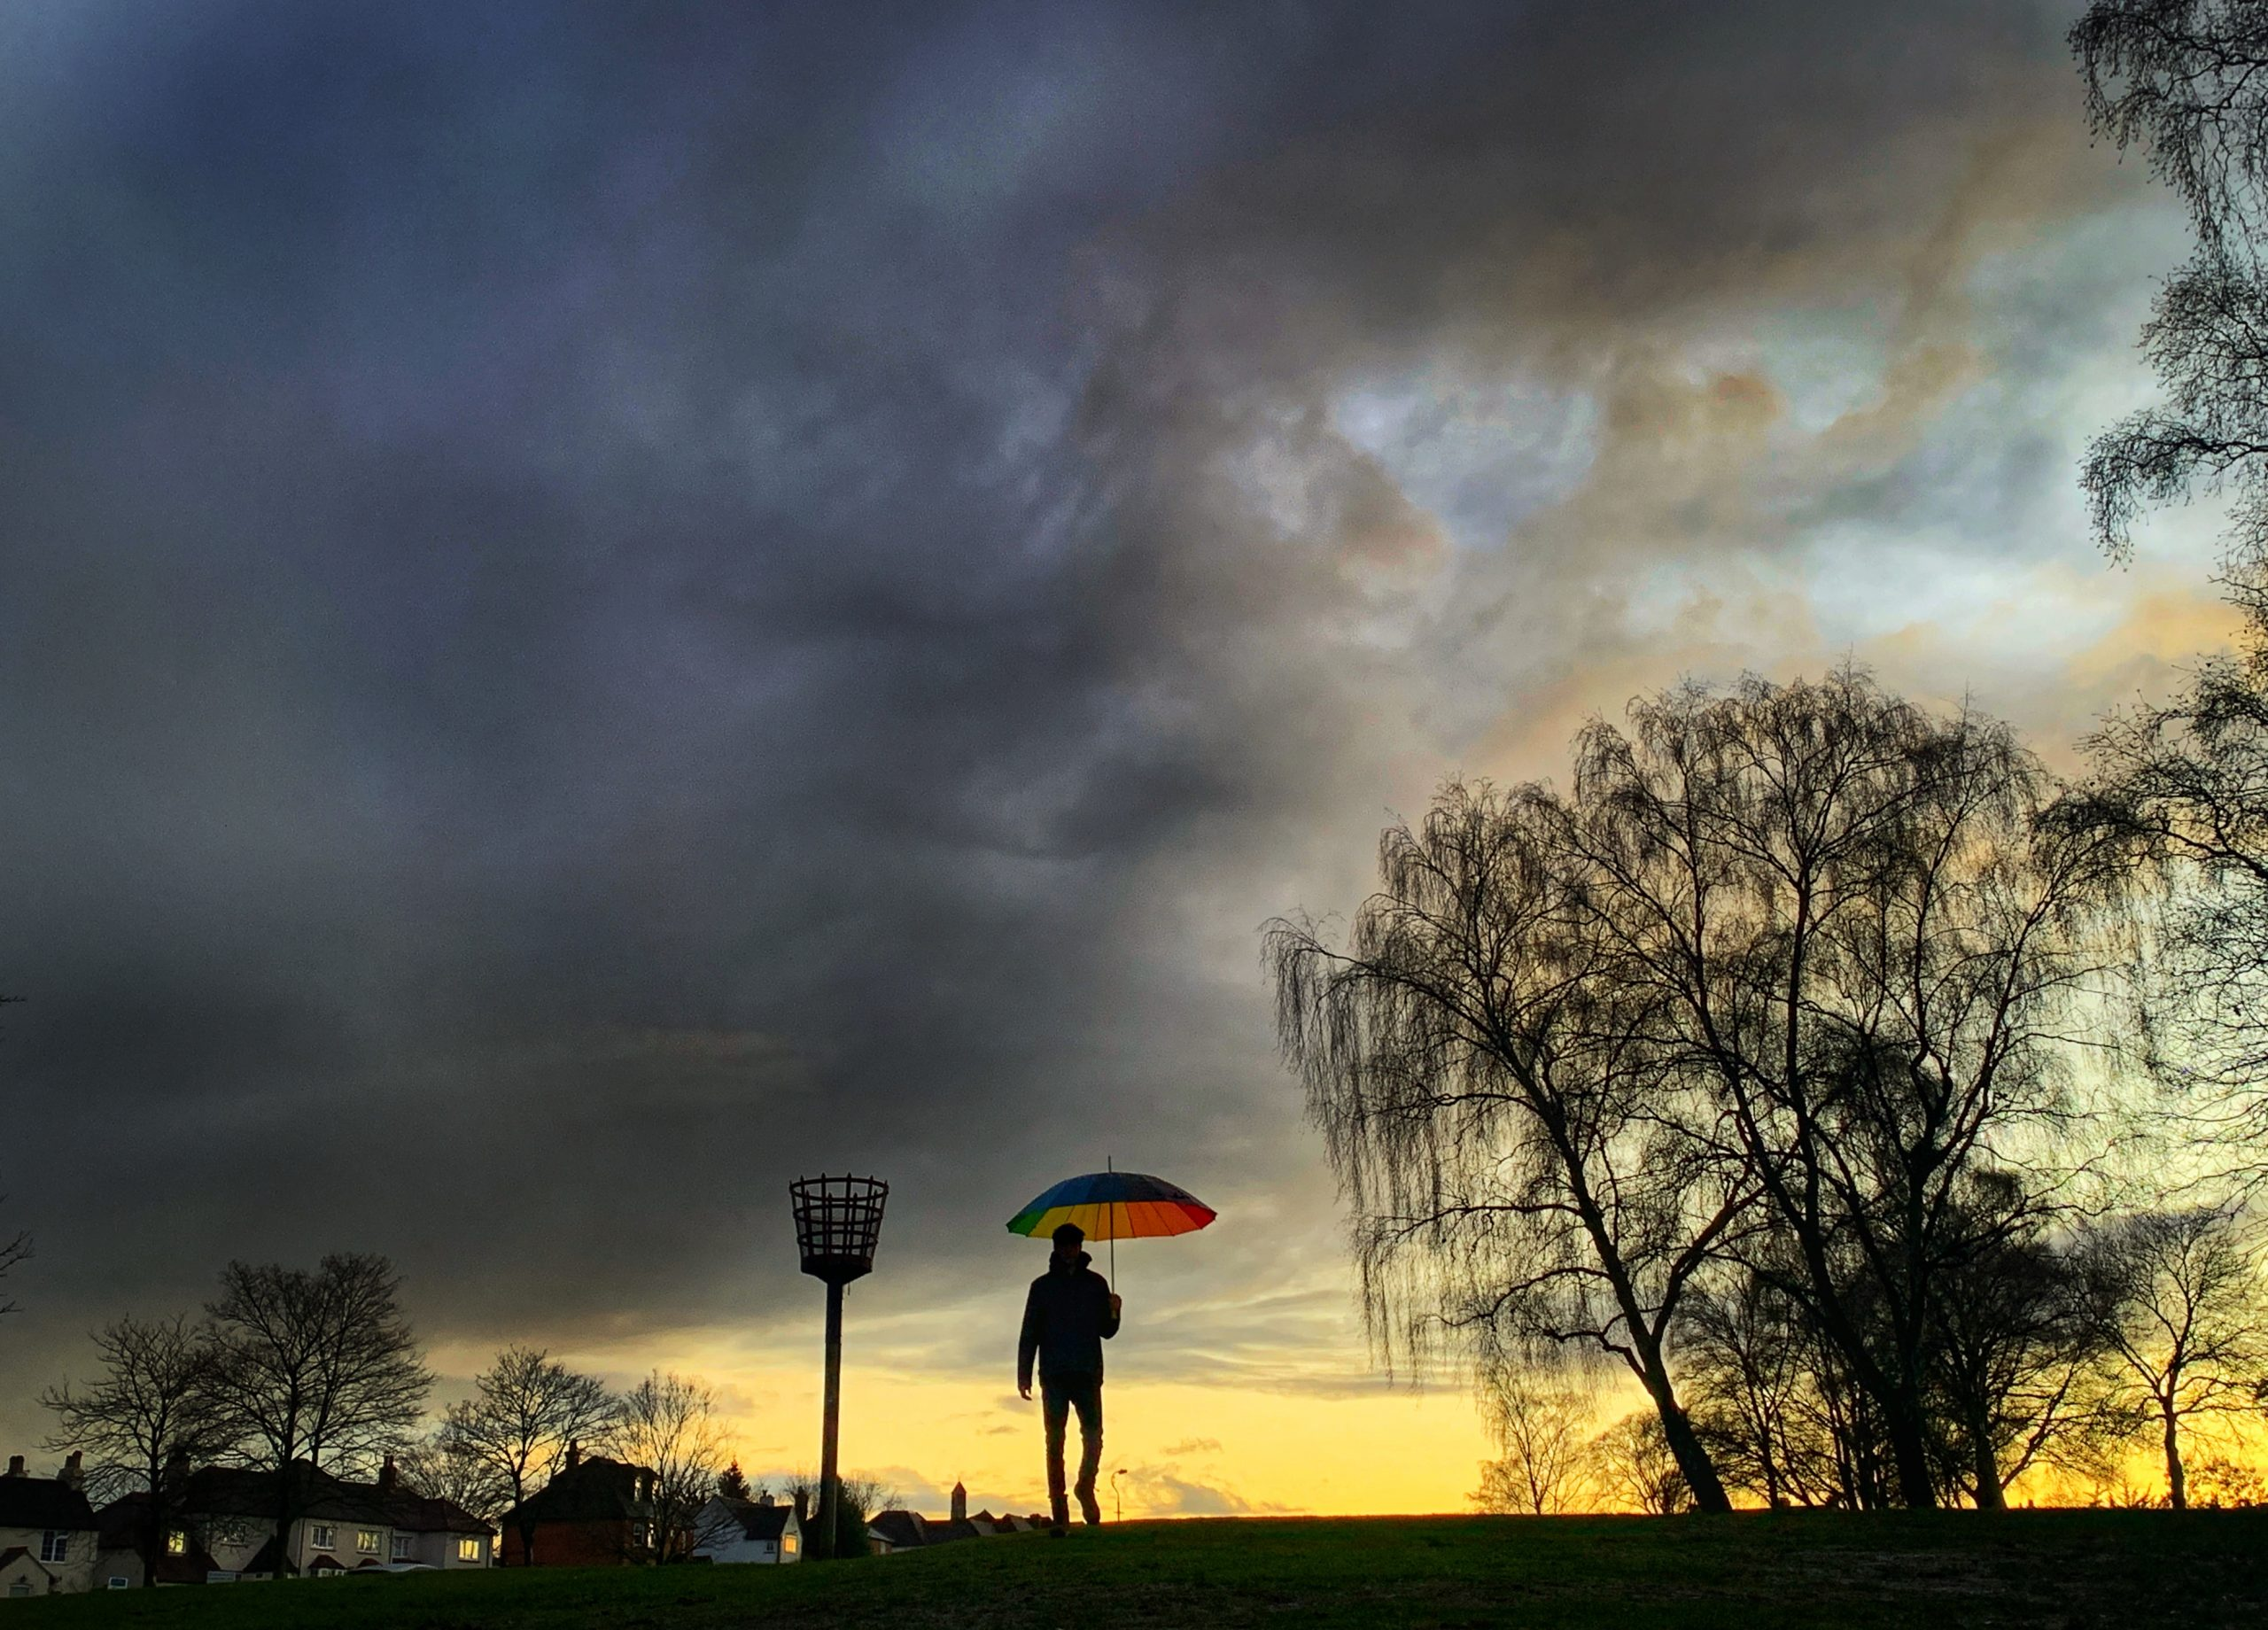 silhouette of man with umbrella in sunset